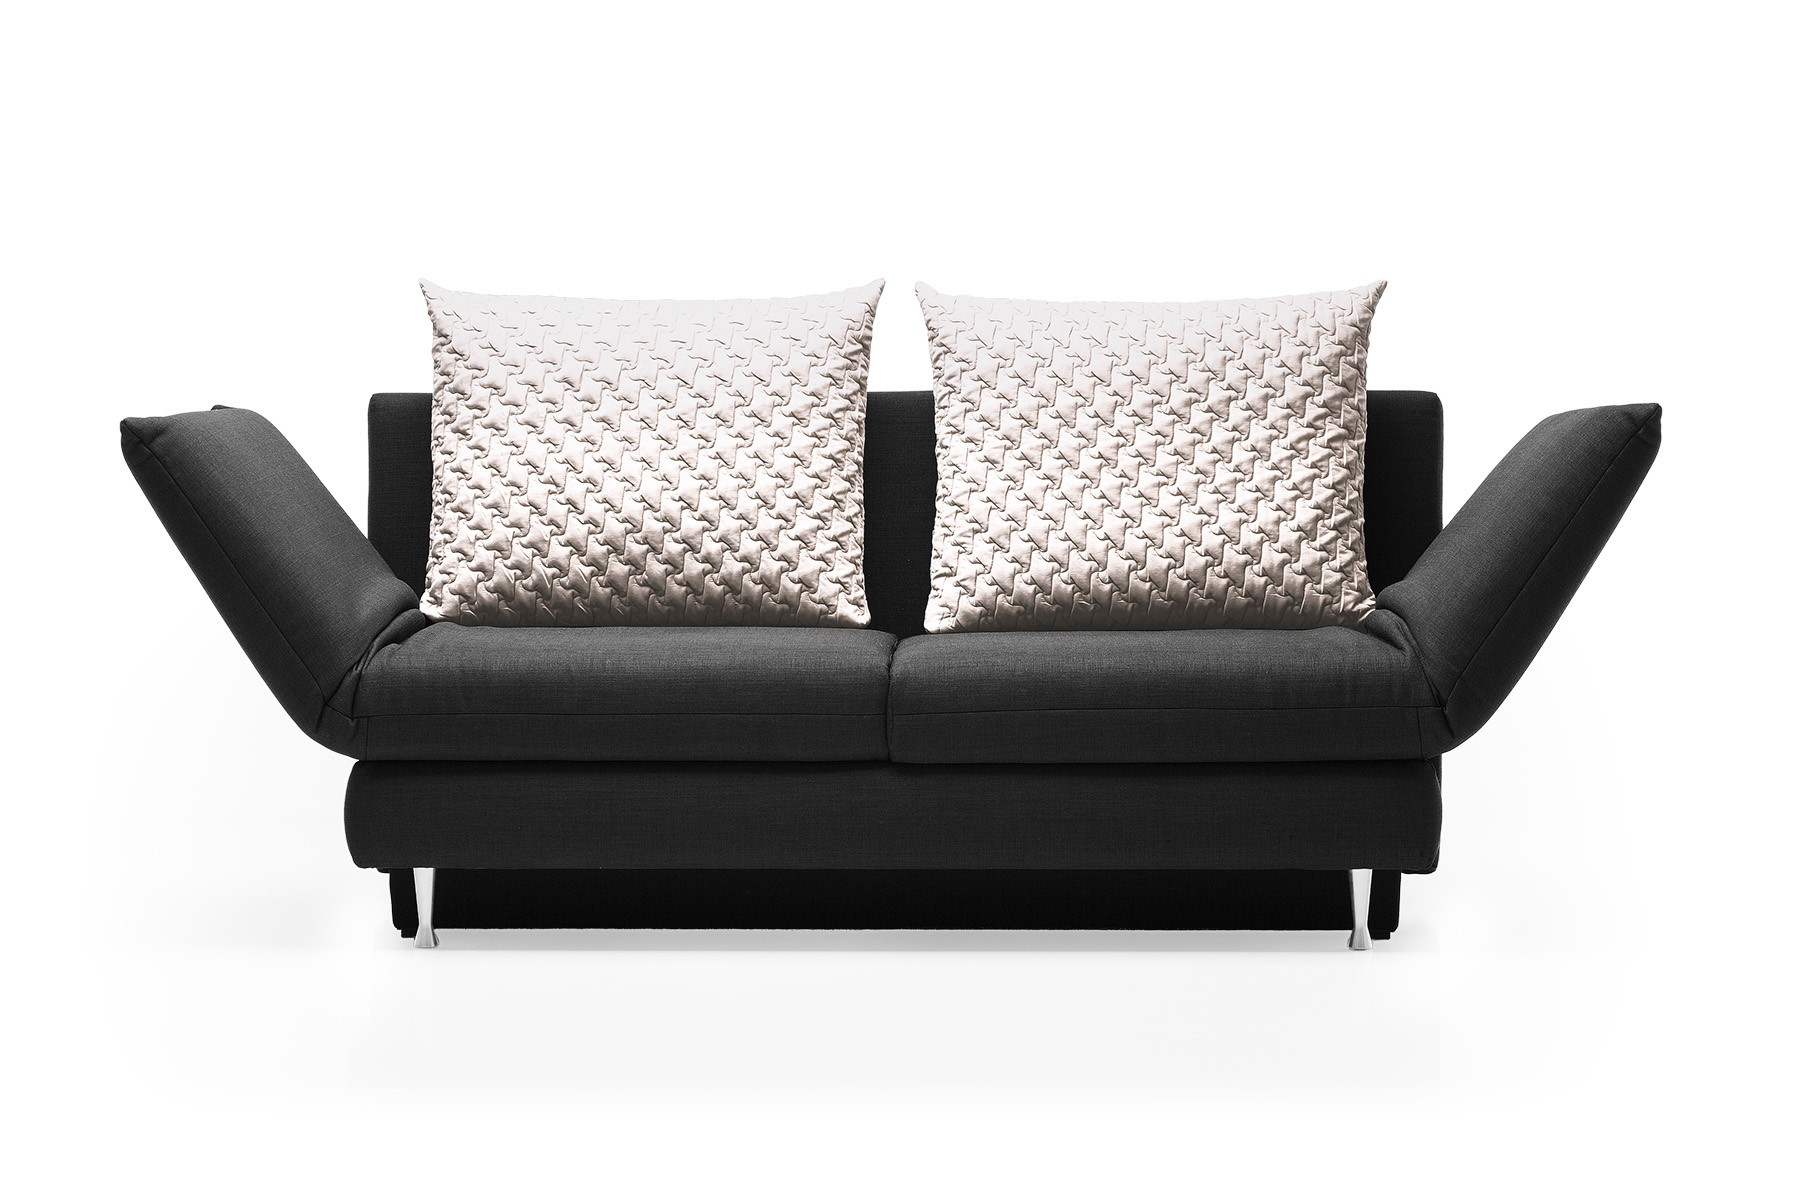 Schlafcouch Weiss